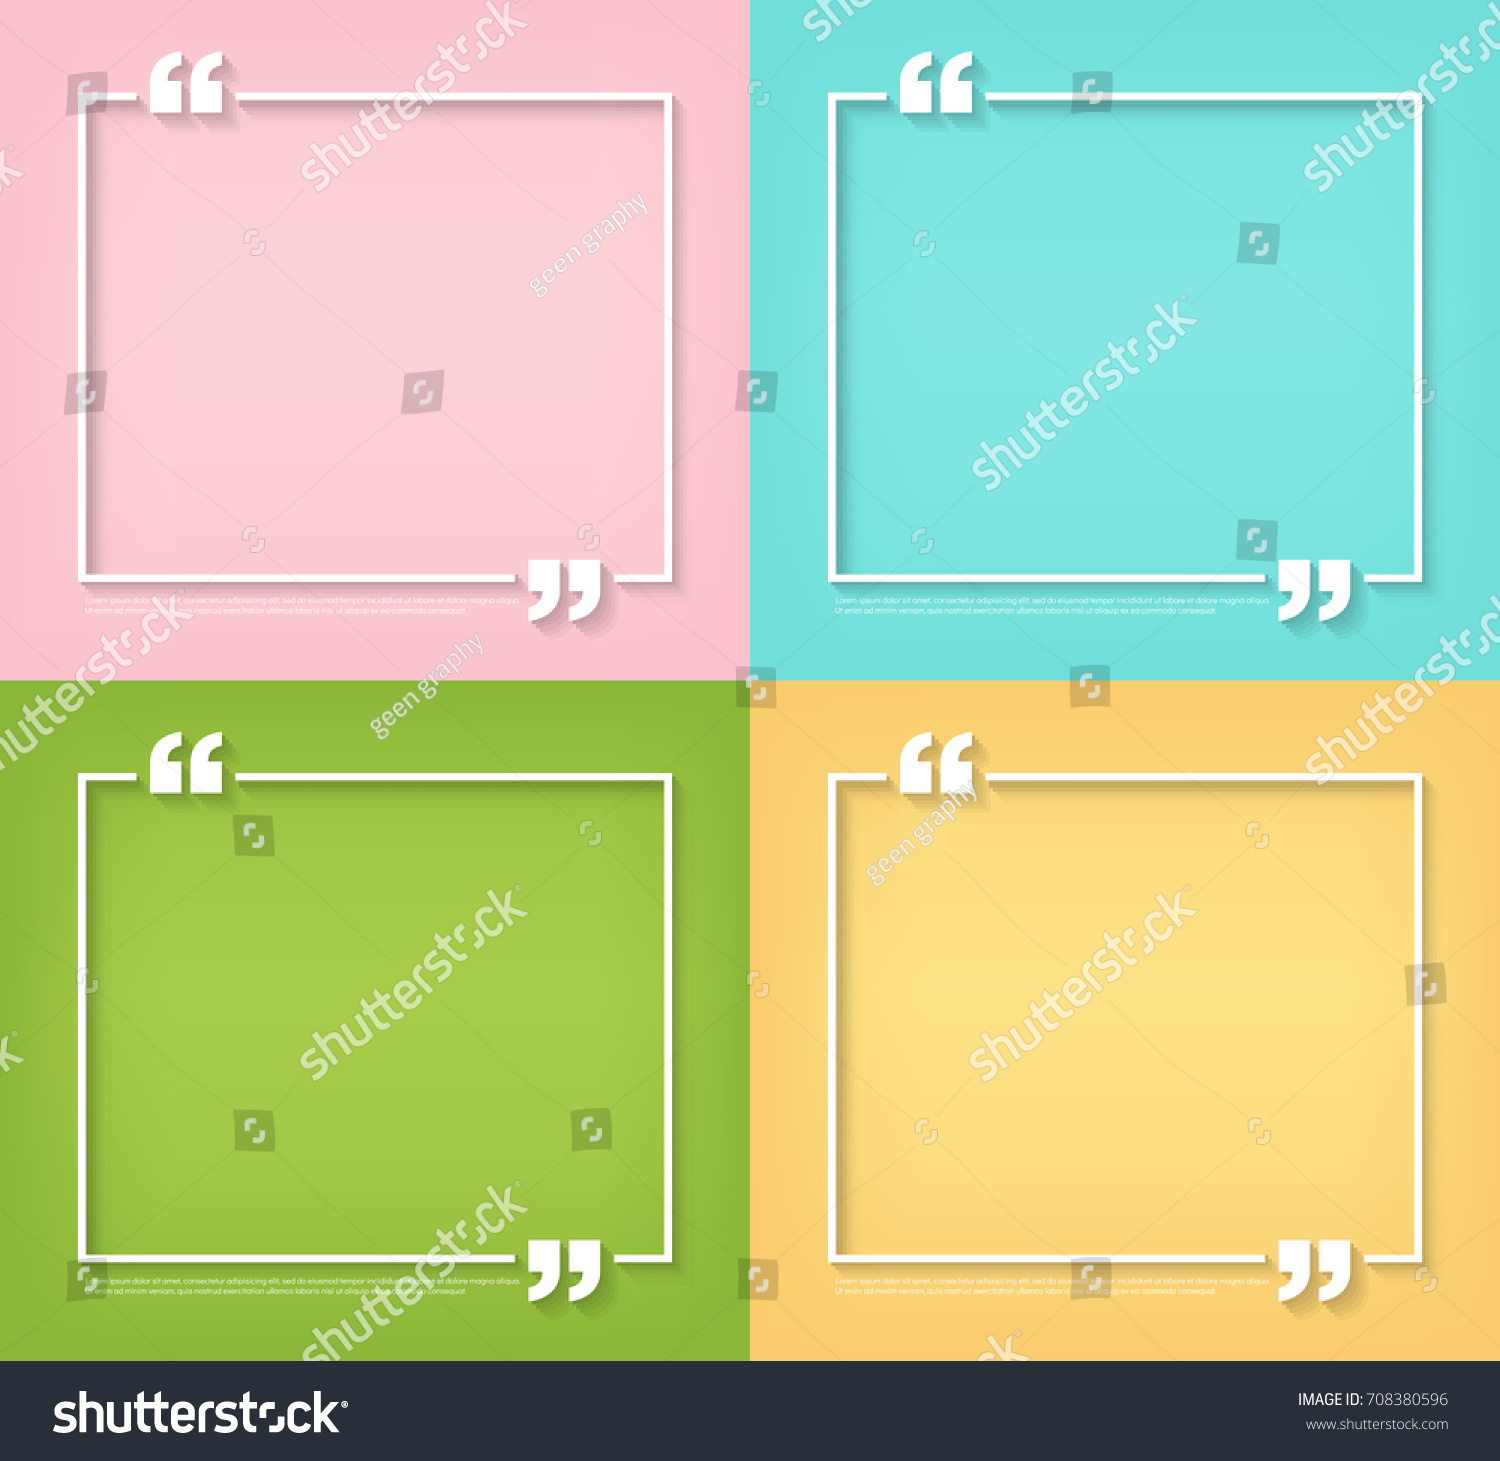 Text quote bubble symbol blank templates stock vector 708380596 text quote bubble symbol blank templates empty square quote bubble for business card paper buycottarizona Gallery